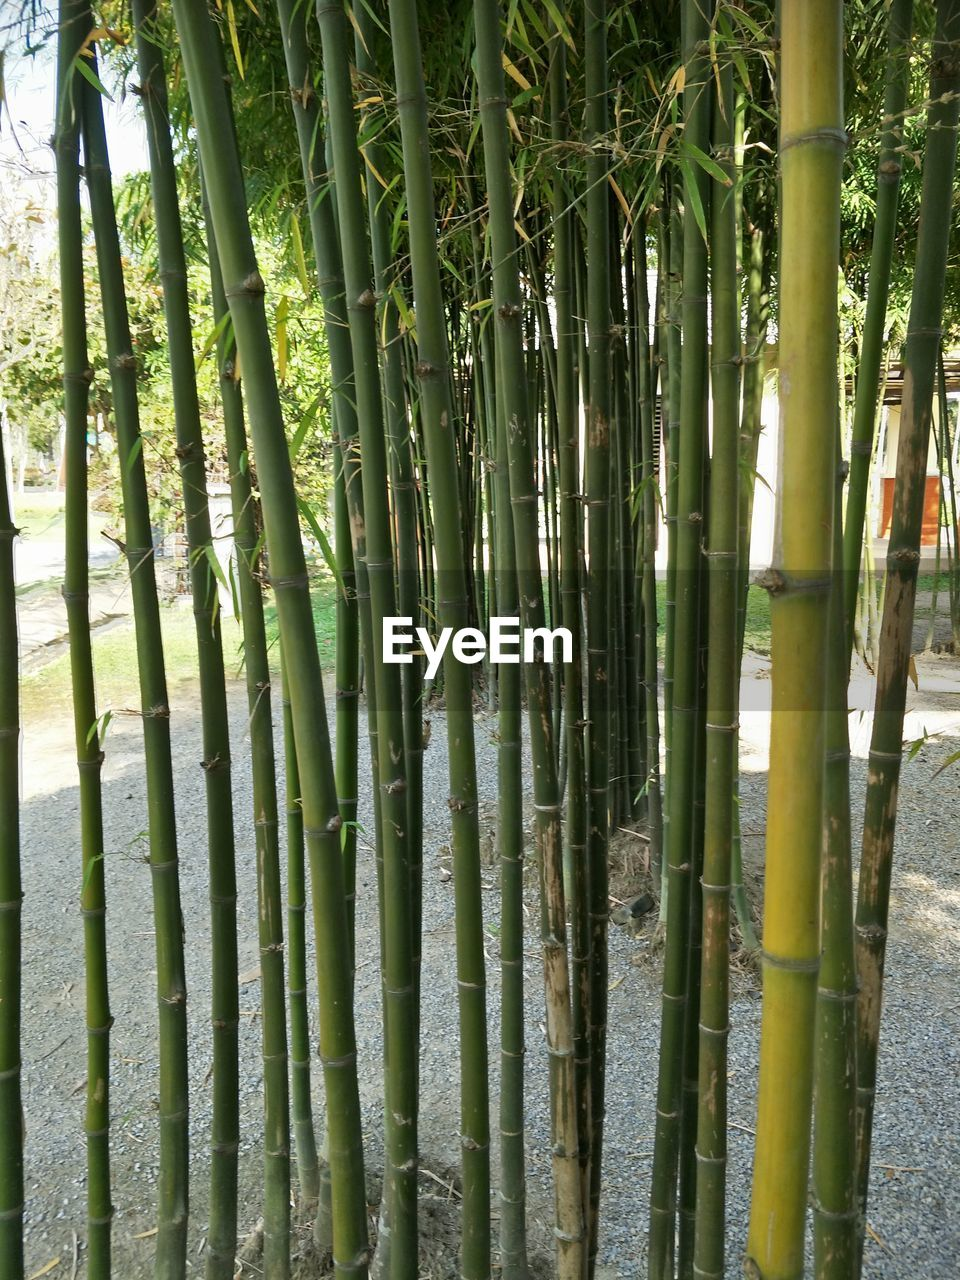 bamboo - plant, bamboo, plant, bamboo grove, growth, green color, beauty in nature, day, no people, tree, nature, forest, tranquility, outdoors, land, close-up, abundance, sunlight, backgrounds, full frame